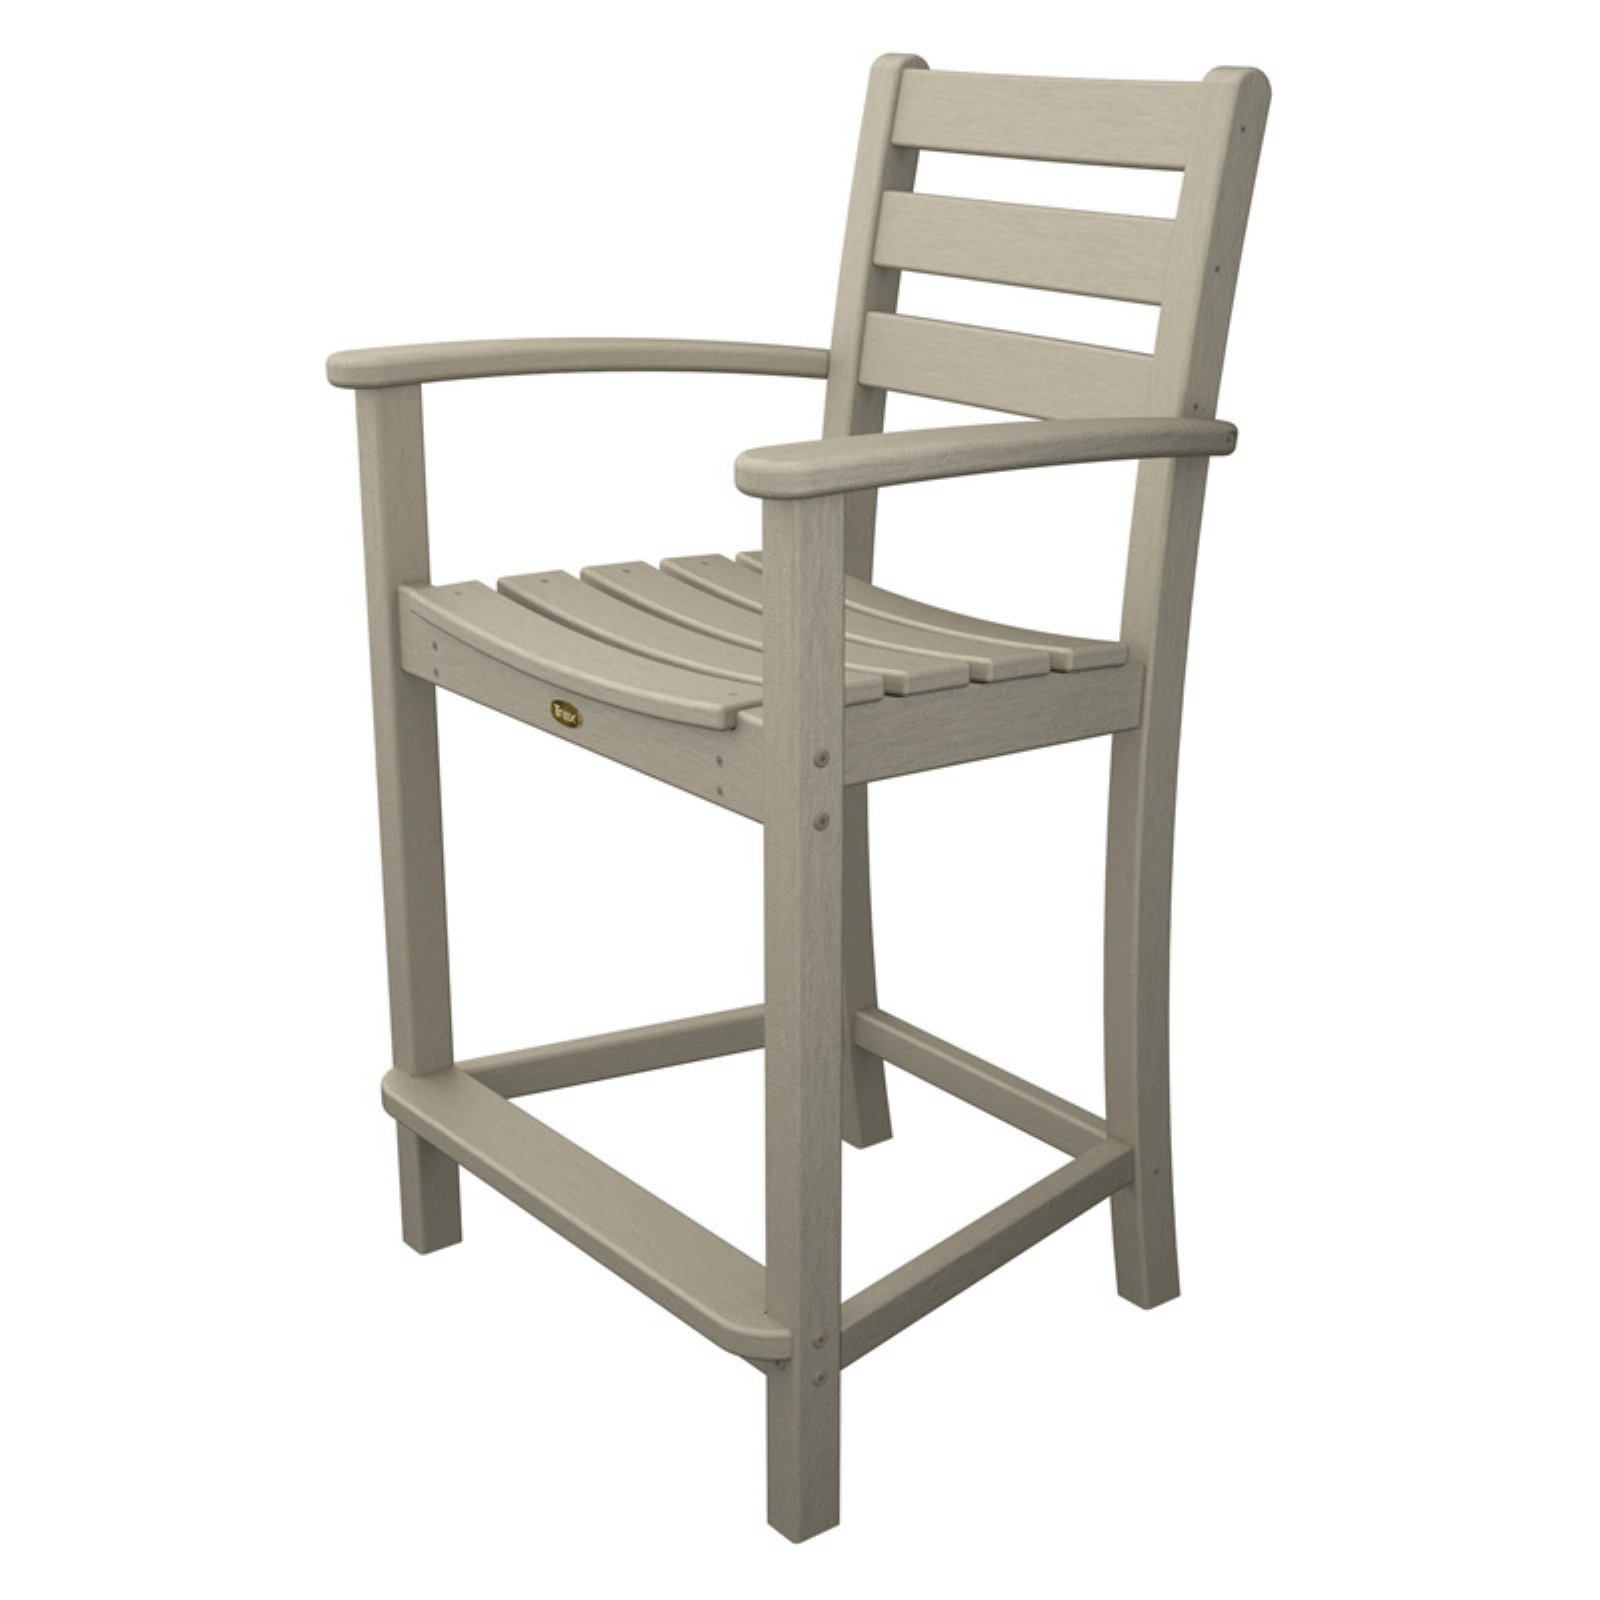 counter height arm chairs father christmas chair covers trex outdoor furniture recycled plastic monterey bay walmart com